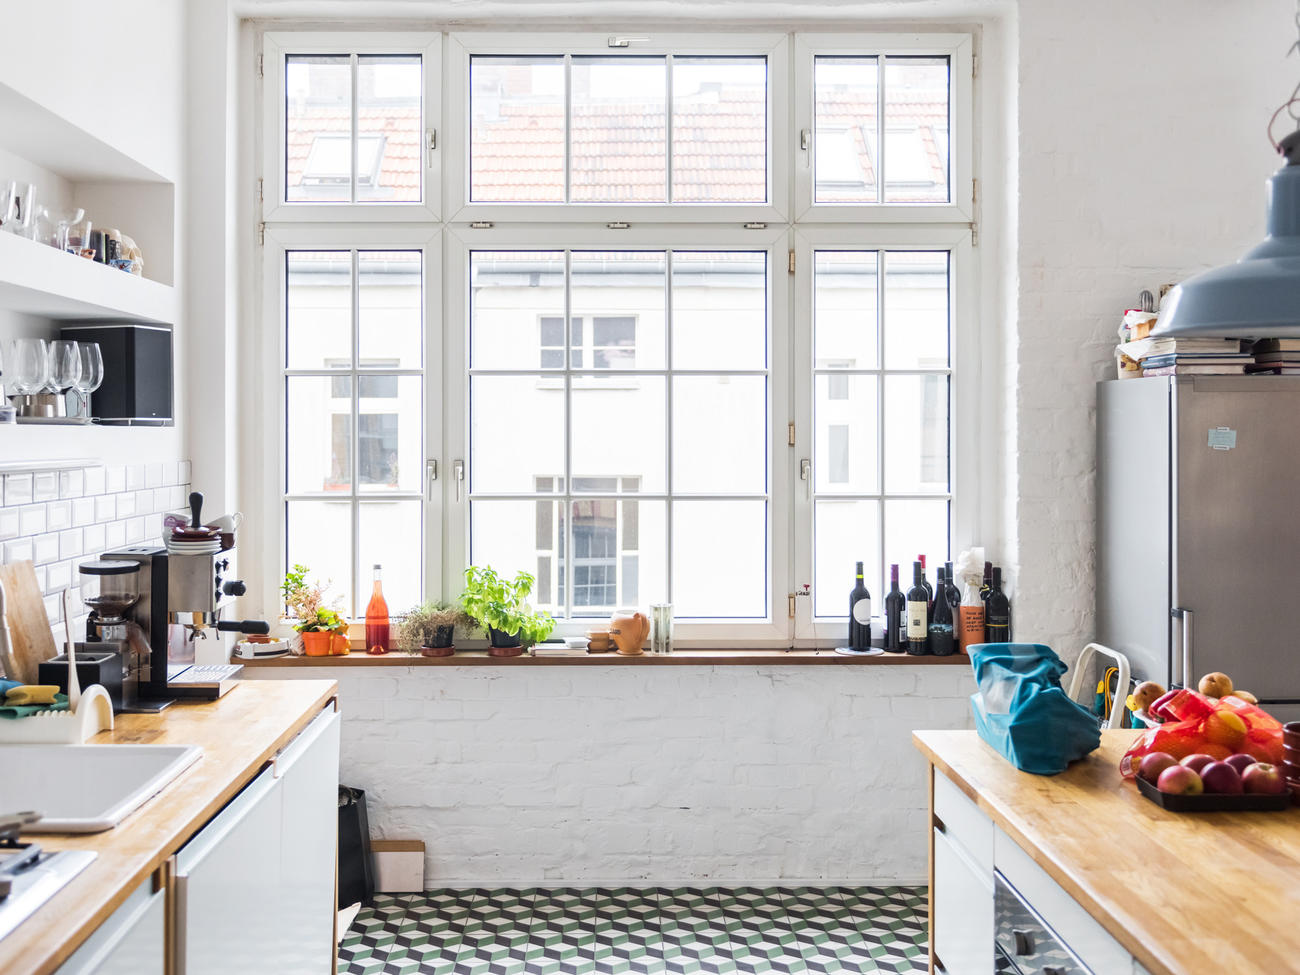 EC: 8 Places In Your Kitchen That You Definitely Don't Clean Often Enough